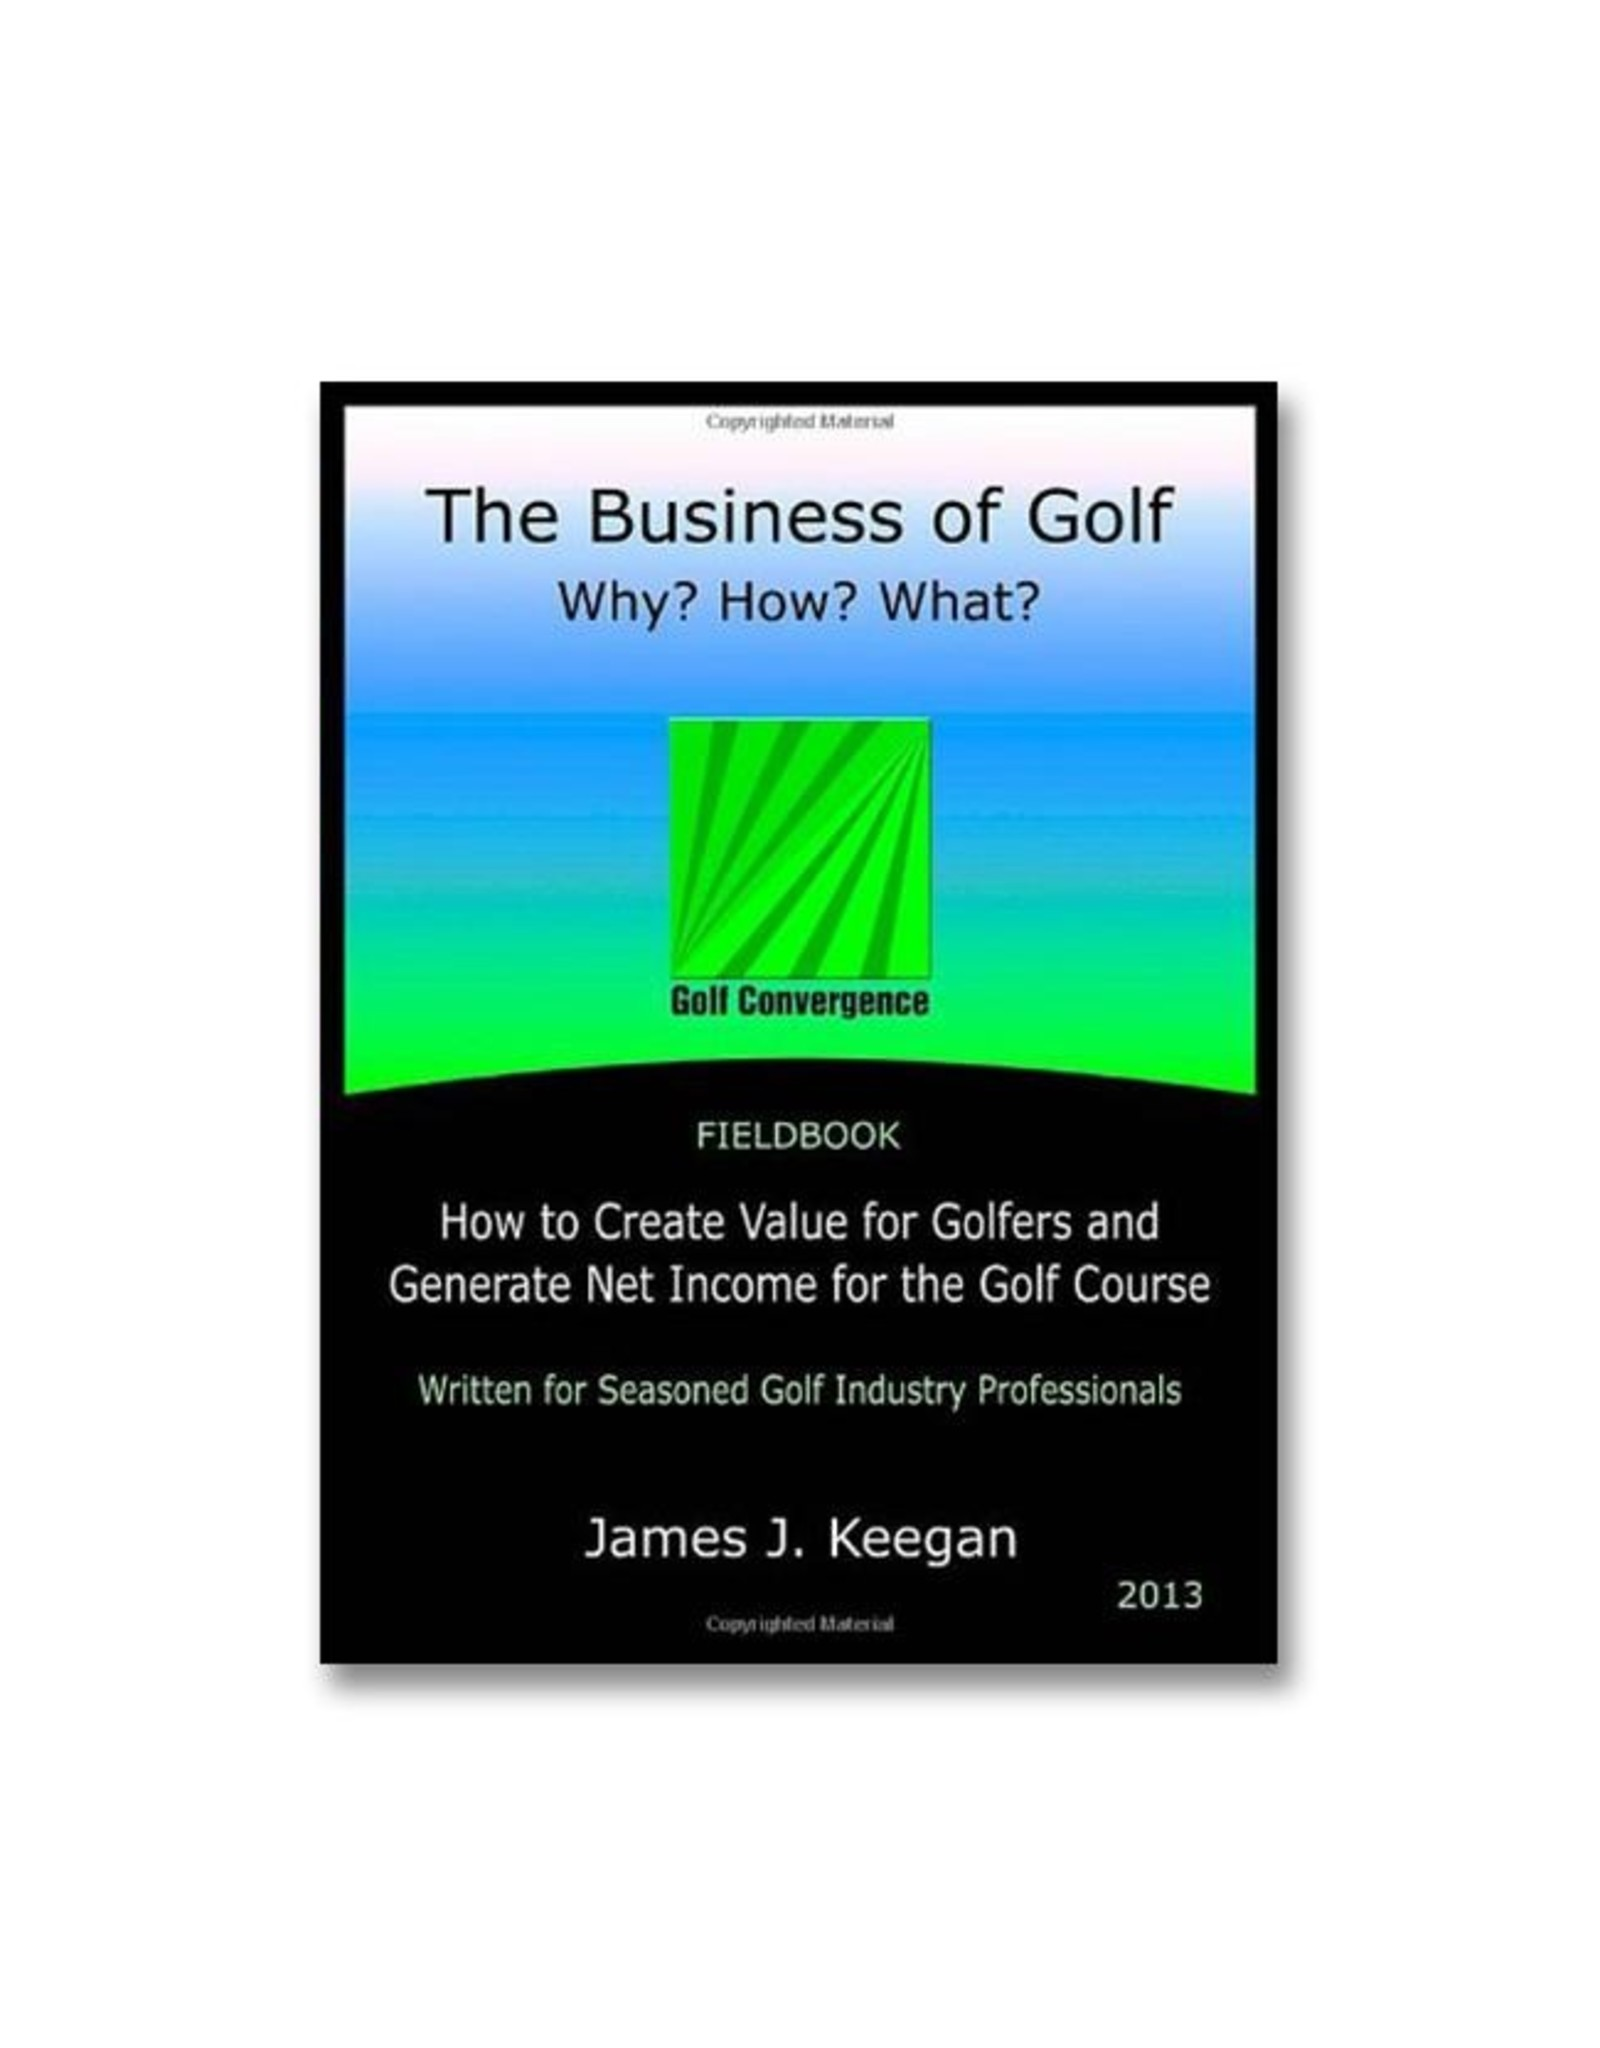 The Business of Golf: Why? How? What?